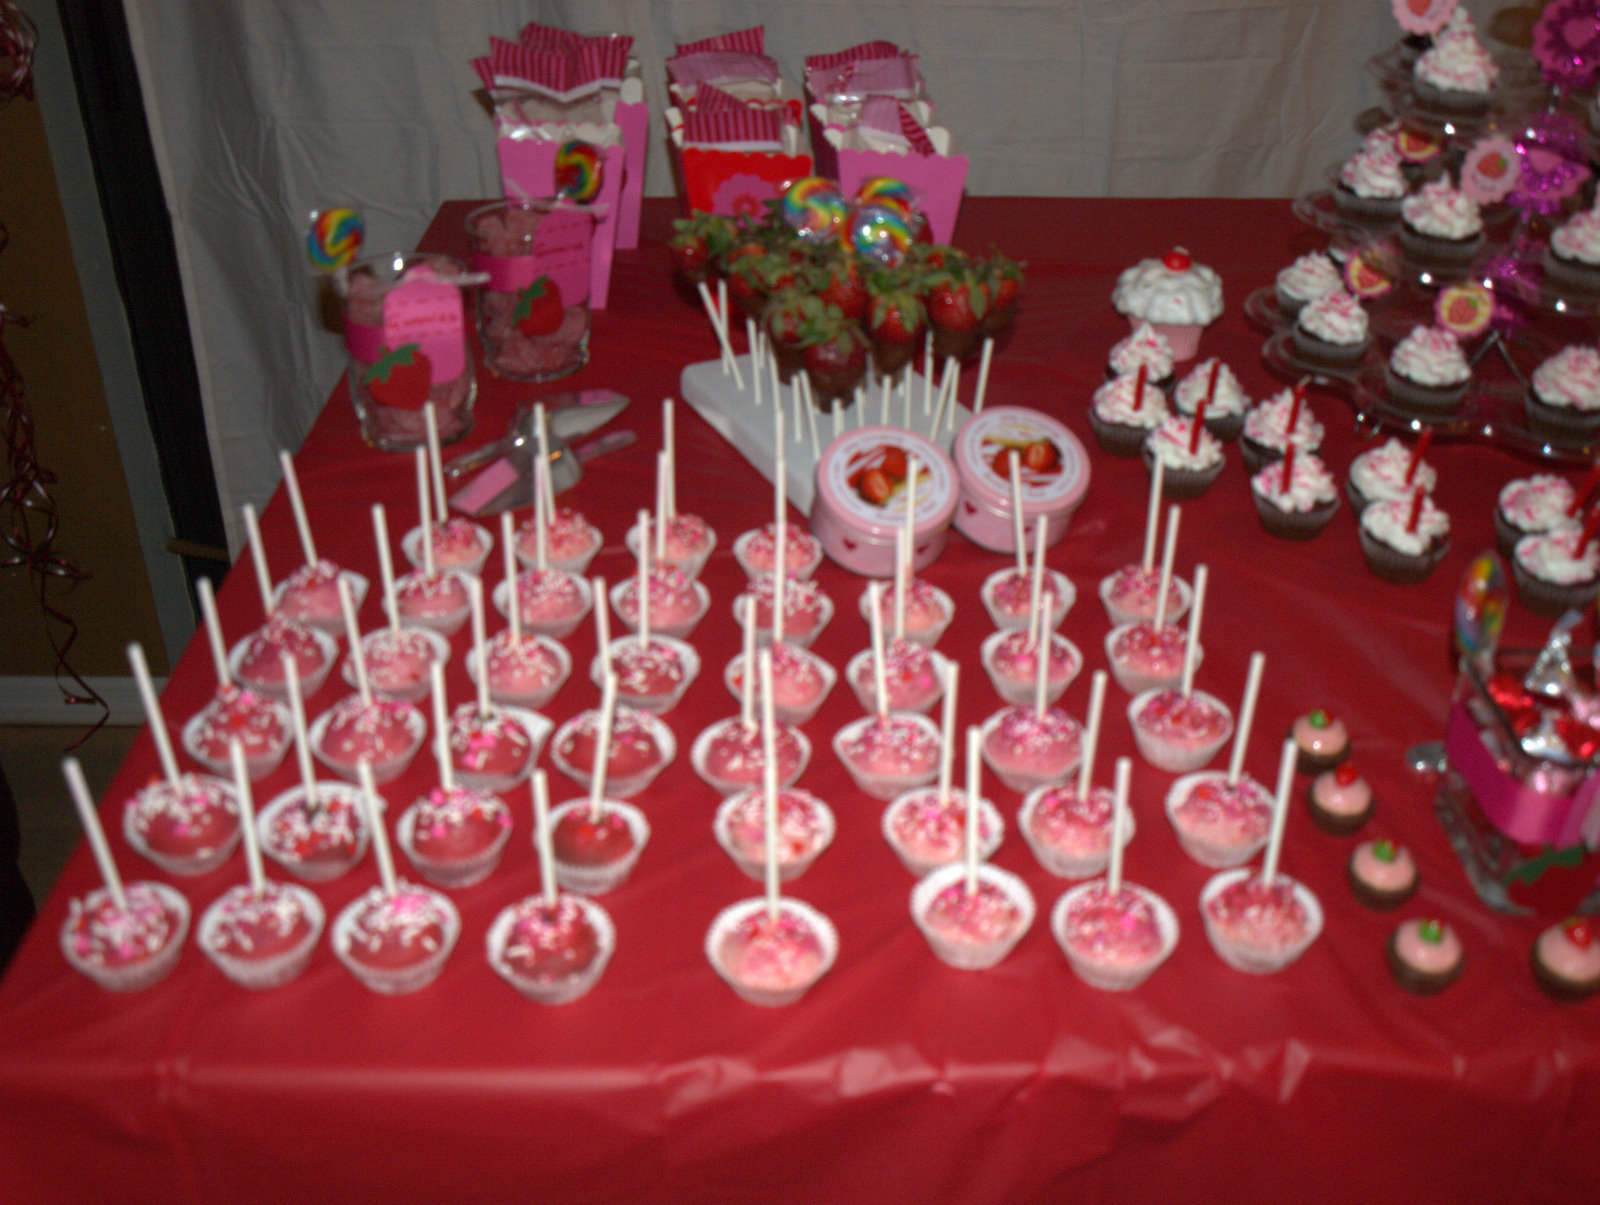 ... Parties & Sweets: Sharys Strawberry Shortcake- 18th Birthday Party